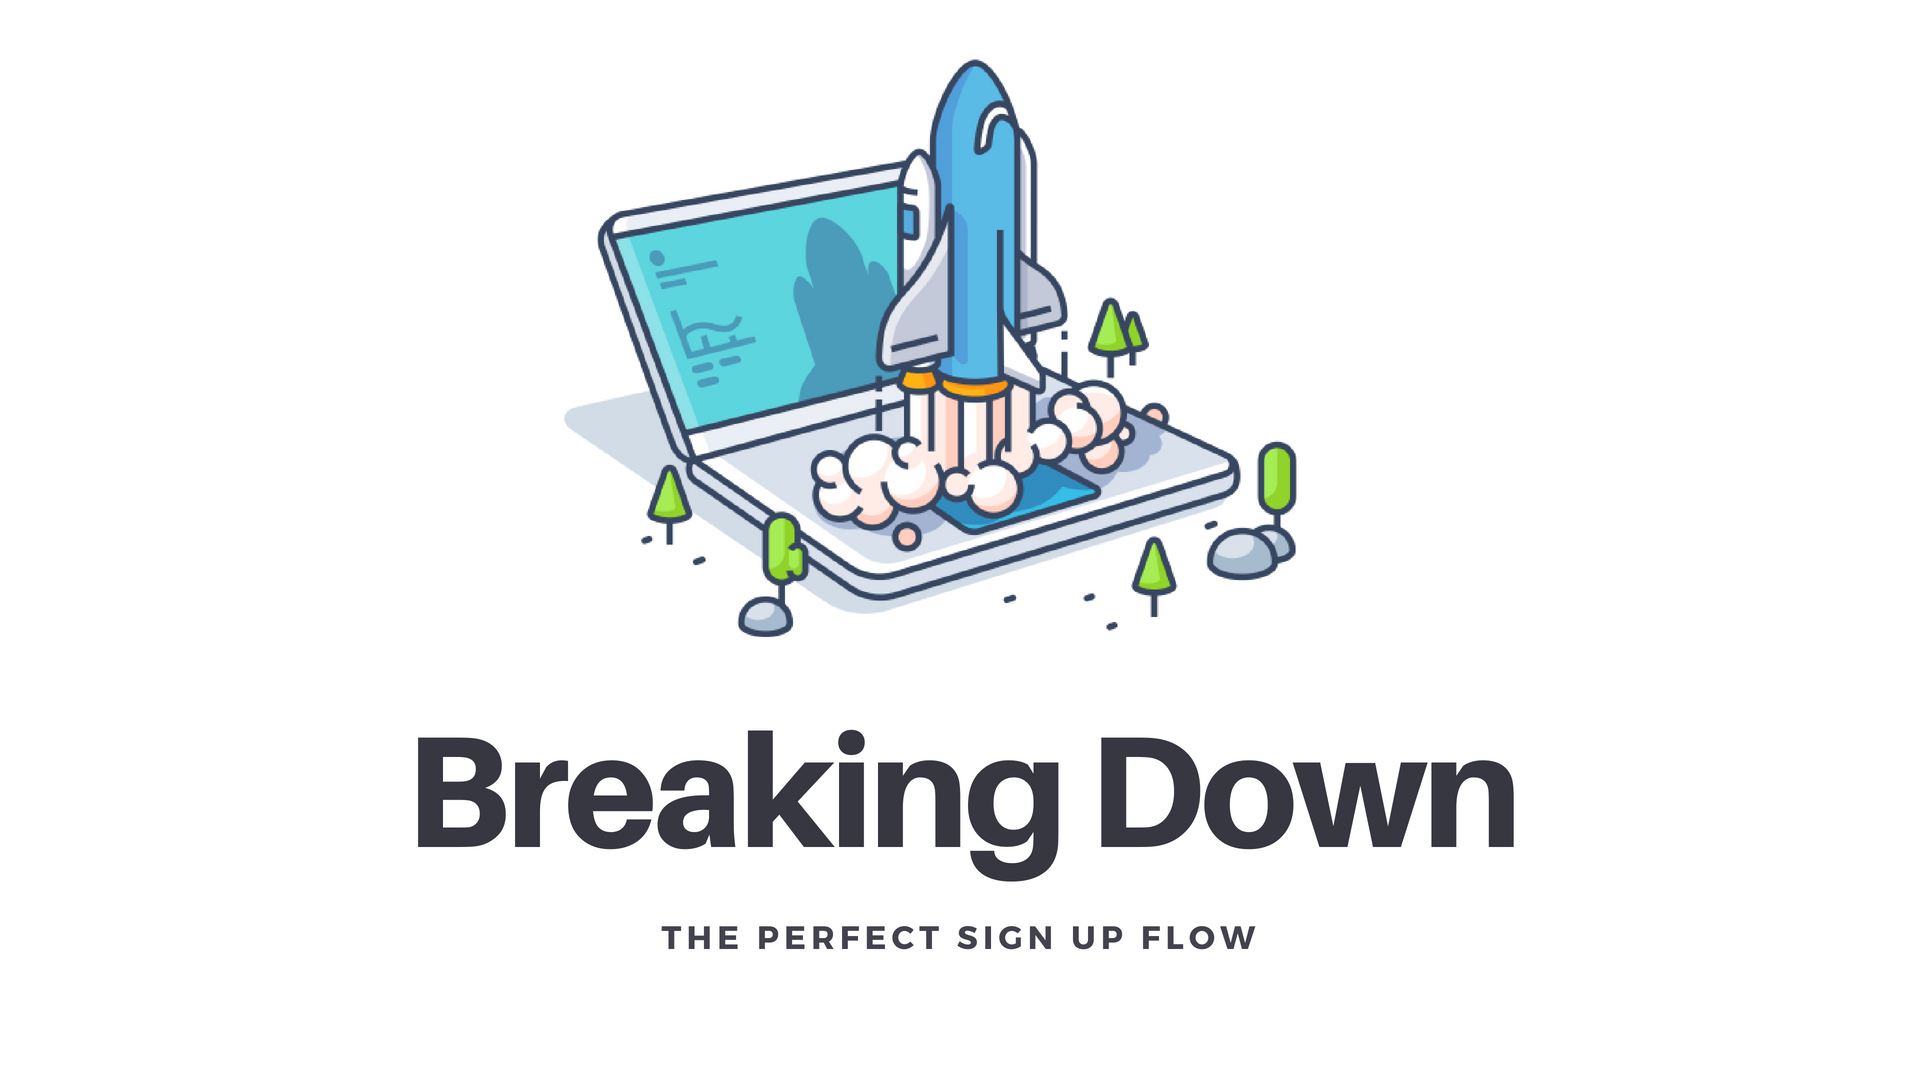 /breaking-down-the-perfect-sign-up-flow-92a1f74c9f85 feature image